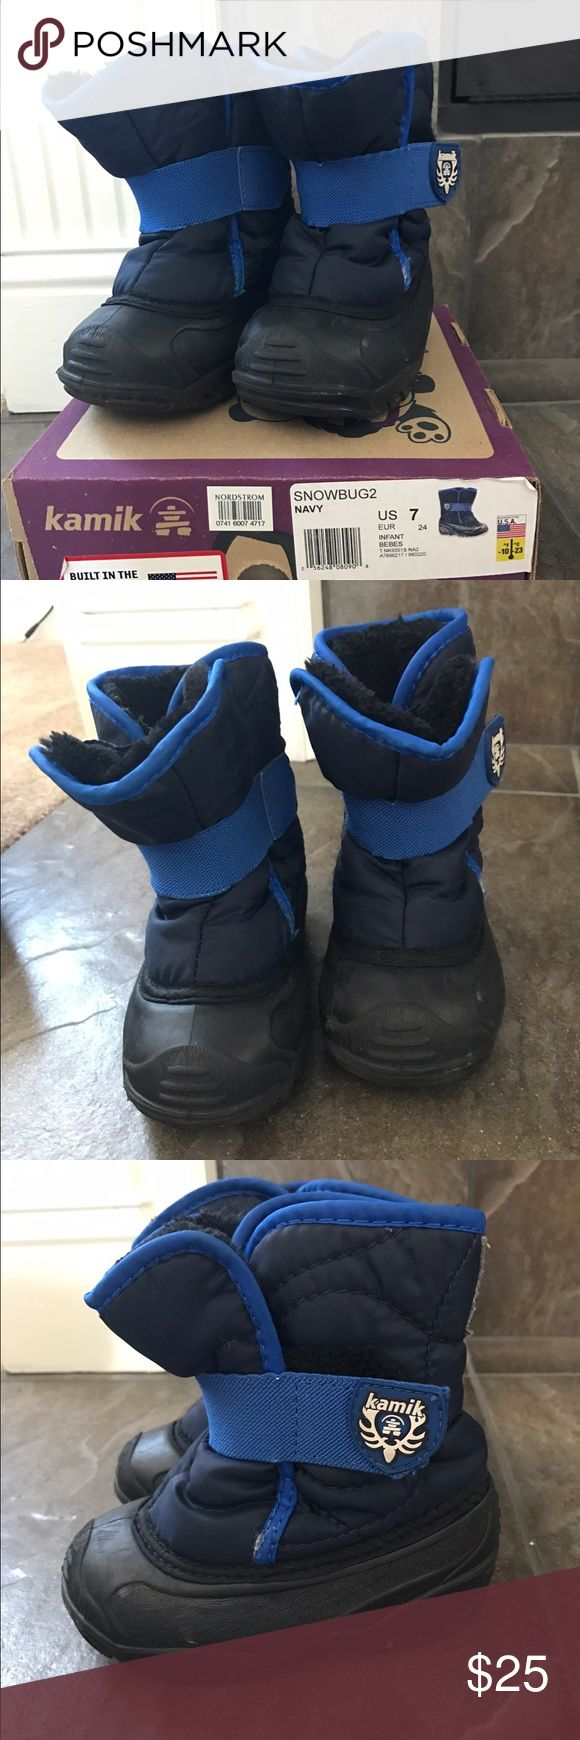 Kamik toddler boys snow boots- size 7 Gently used kamik snow boots- size 7. Great condition and well cared for. Only worn by my son!  These are awesome for cold weather and very easy to get on and off toddler feet!  Love these- purchased at Nordstrom. Kamik Shoes Rain & Snow Boots